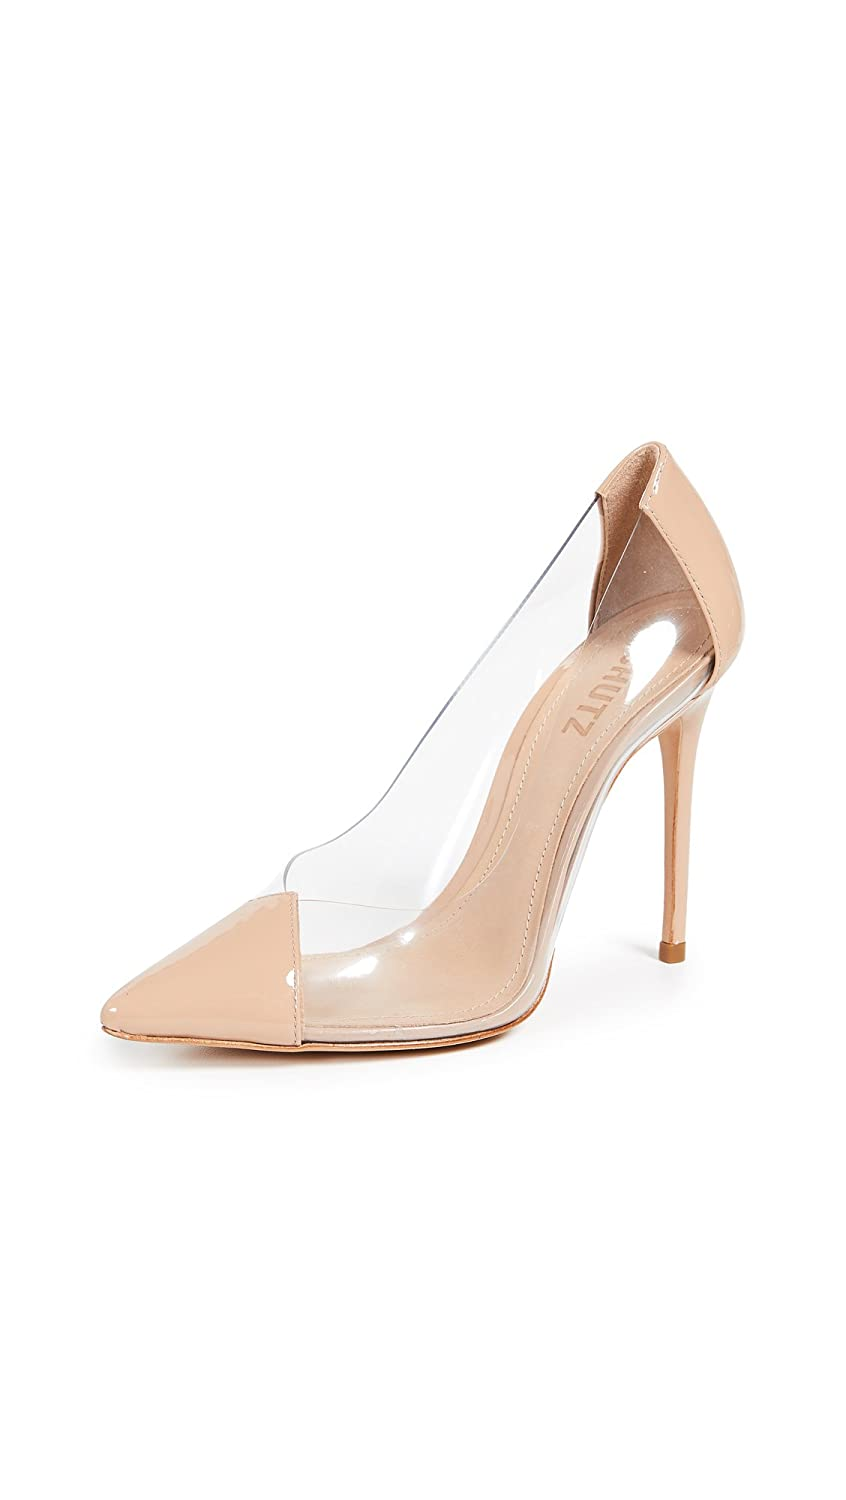 SCHUTZ Women's Cendi Point Toe Pumps